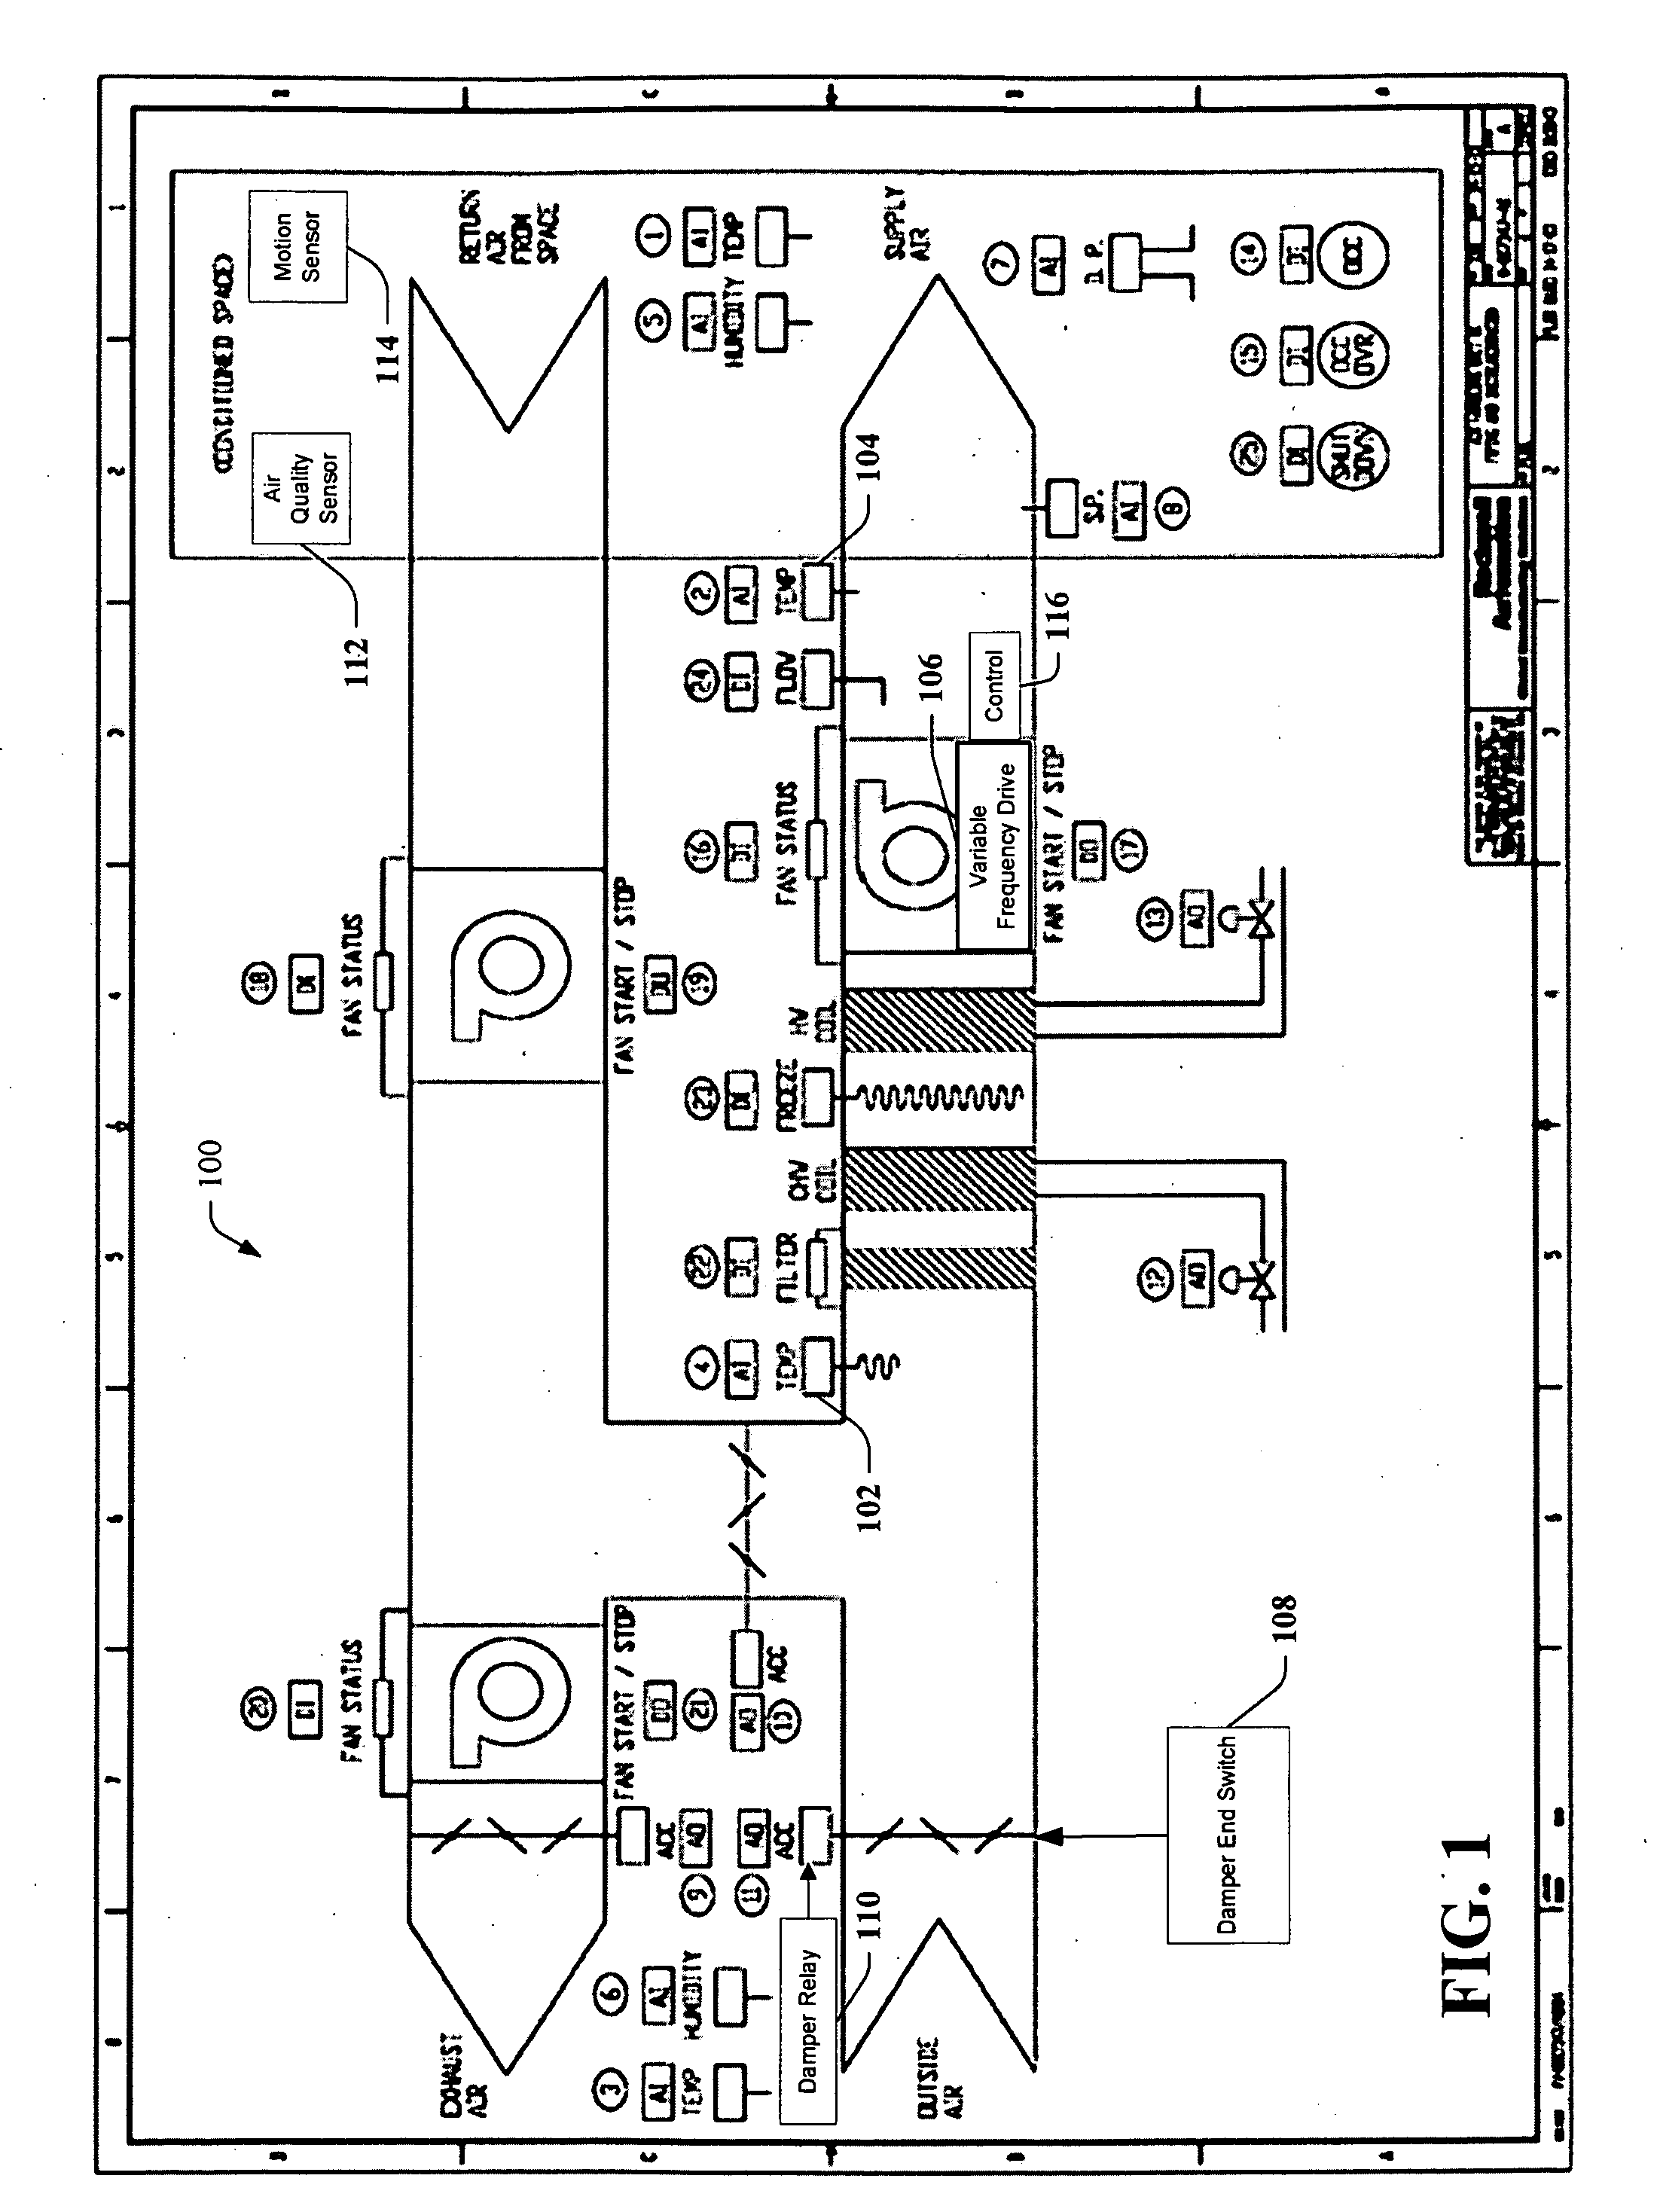 Air Handling Unit Variable Frequency Drive For Air Handling Unit